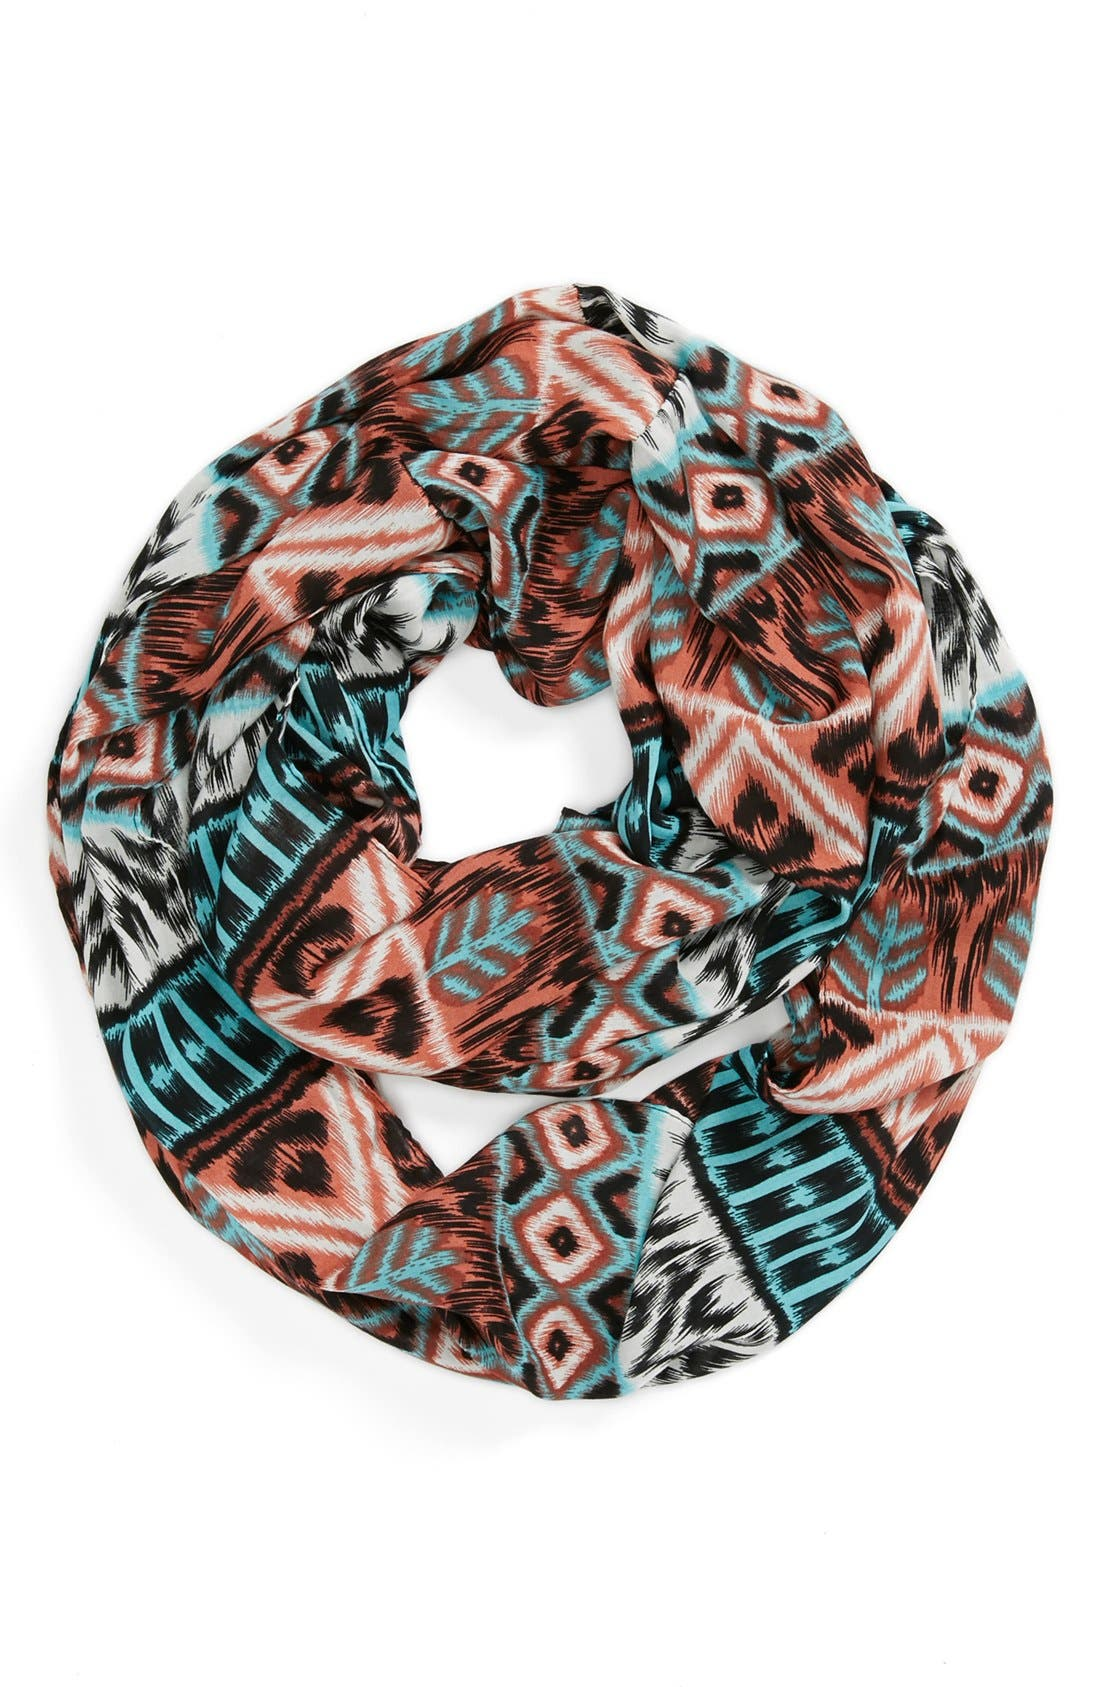 Alternate Image 1 Selected - POVERTY FLATS by rian 'Tribal' Infinity Scarf